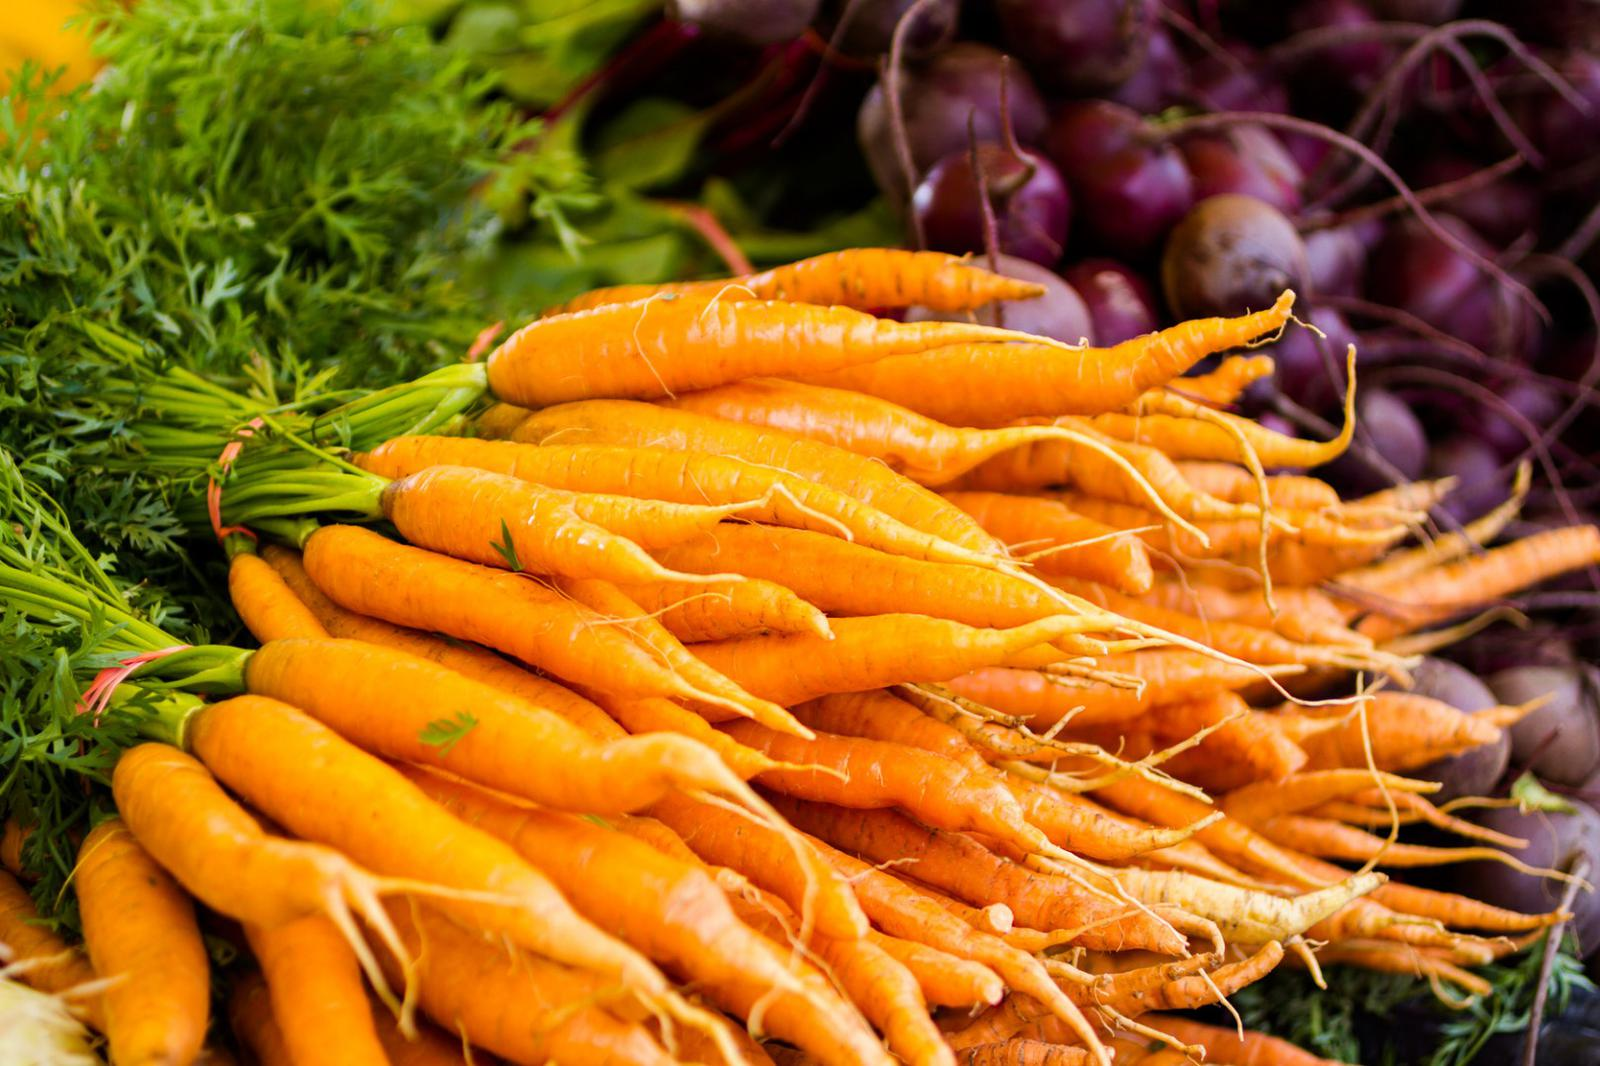 Local organic carrots at the Farmers market in Virginia Beach